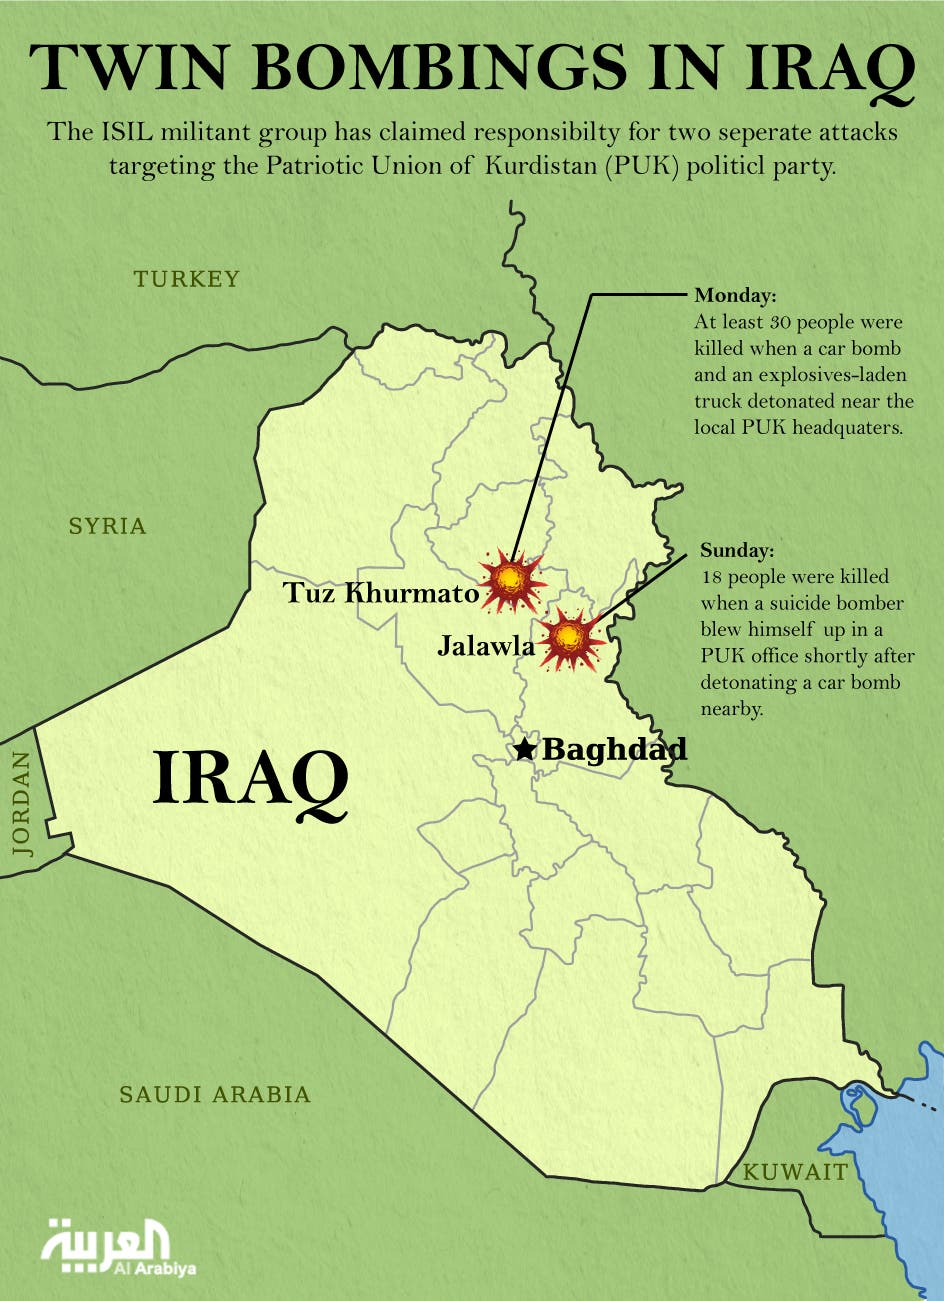 Infographic: Twin bombings in Iraq